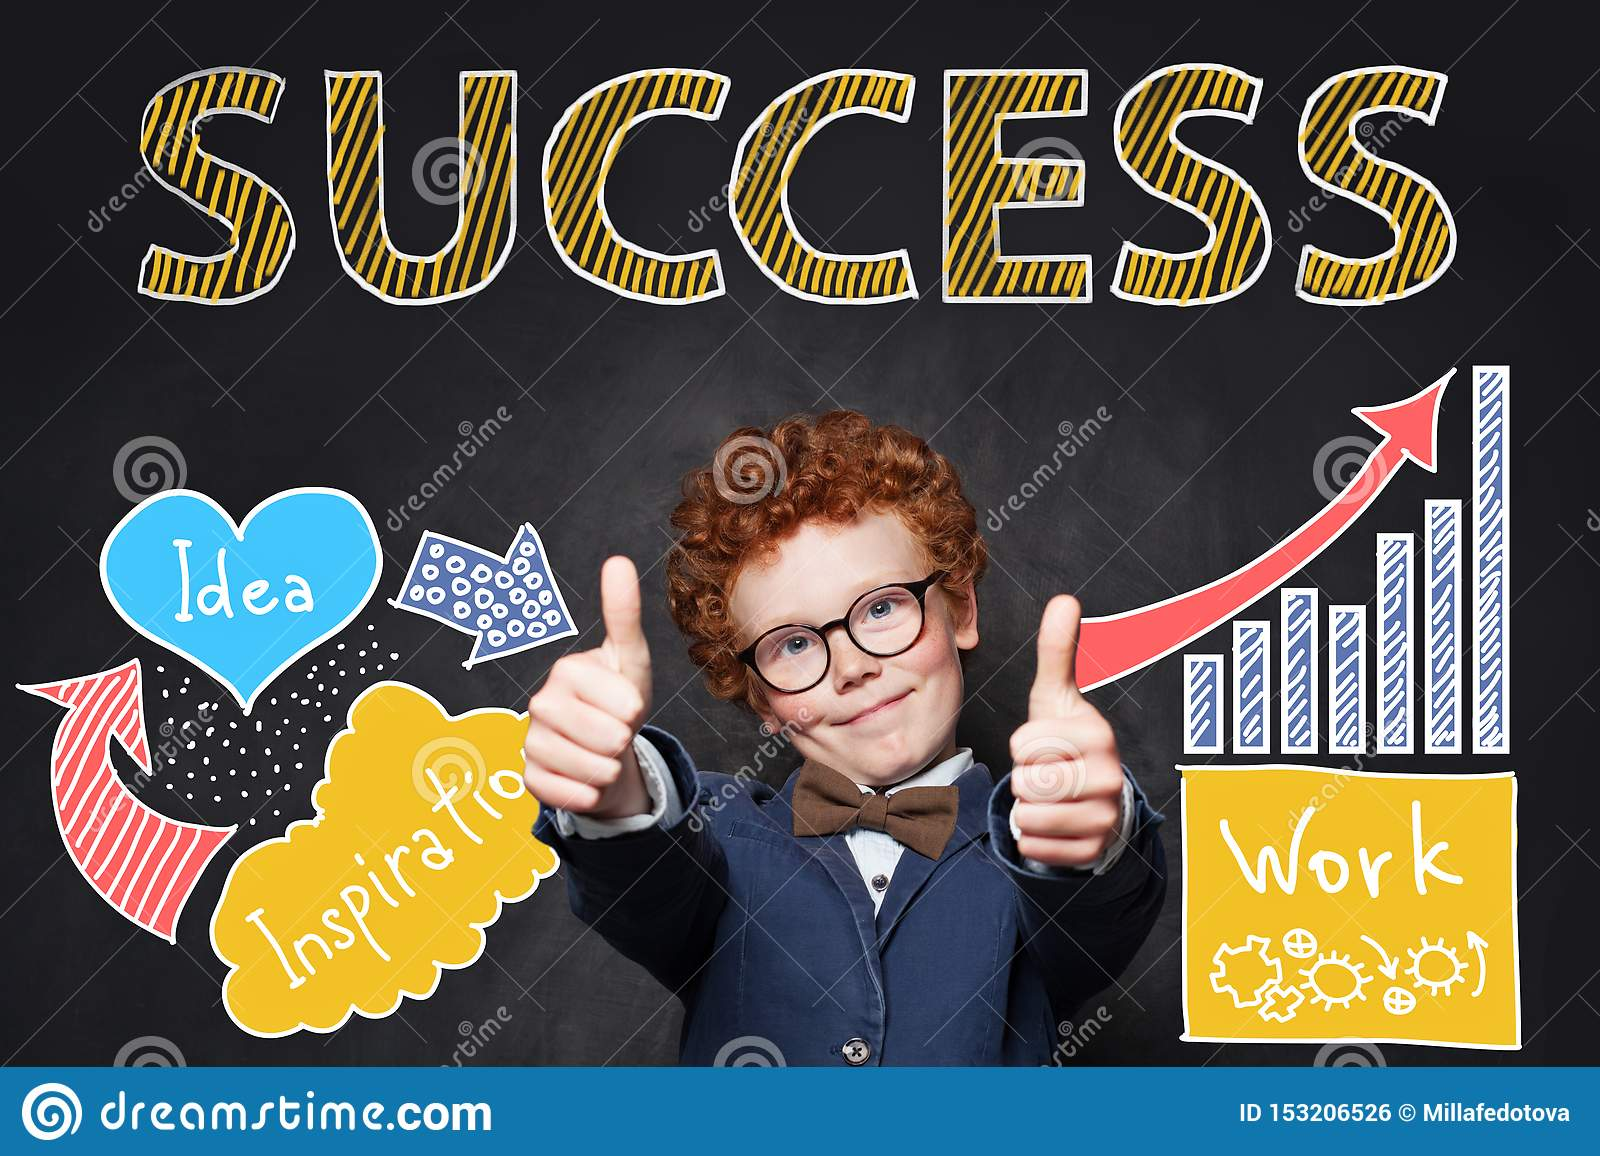 Cute child with ginger hair wearing glasses and suit having fun and showing thumbs up on hand drawing business sketch background